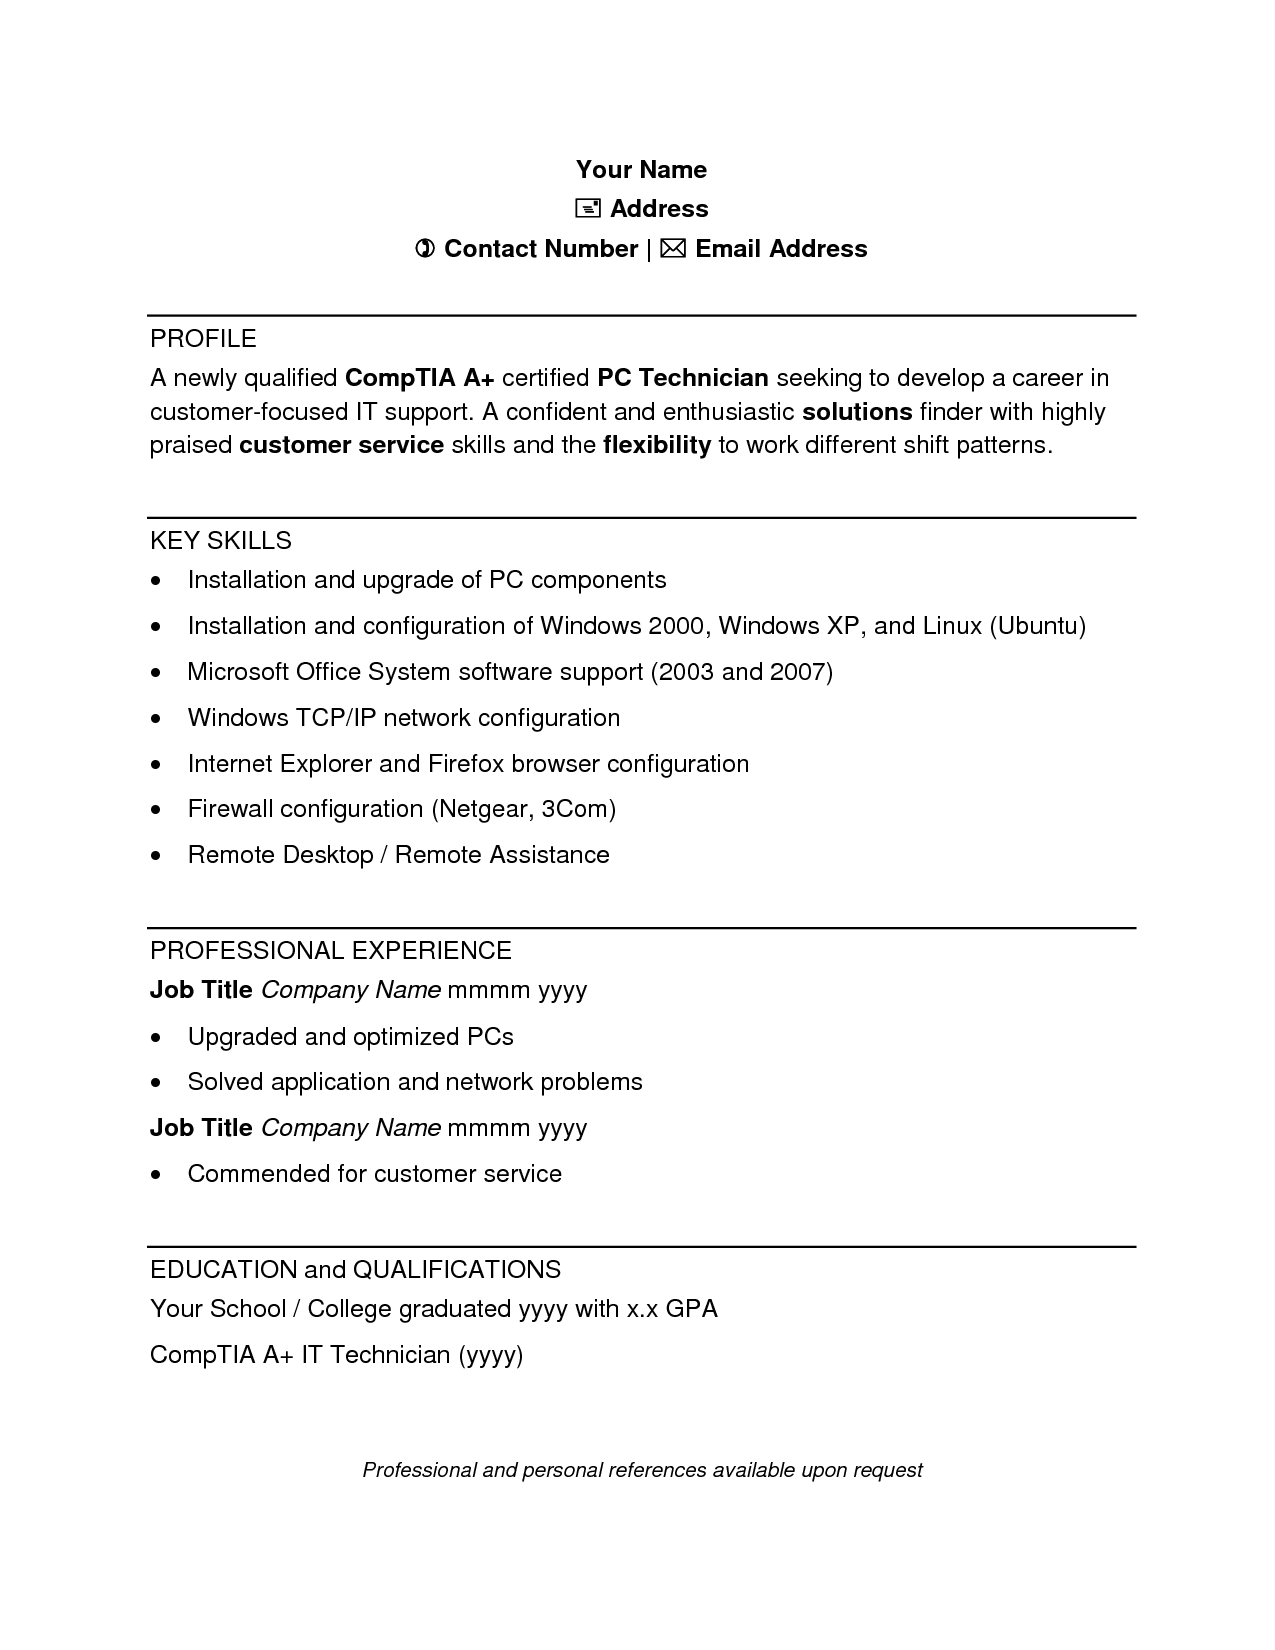 Sample Resume Computer Technician Doc  Home Design Idea